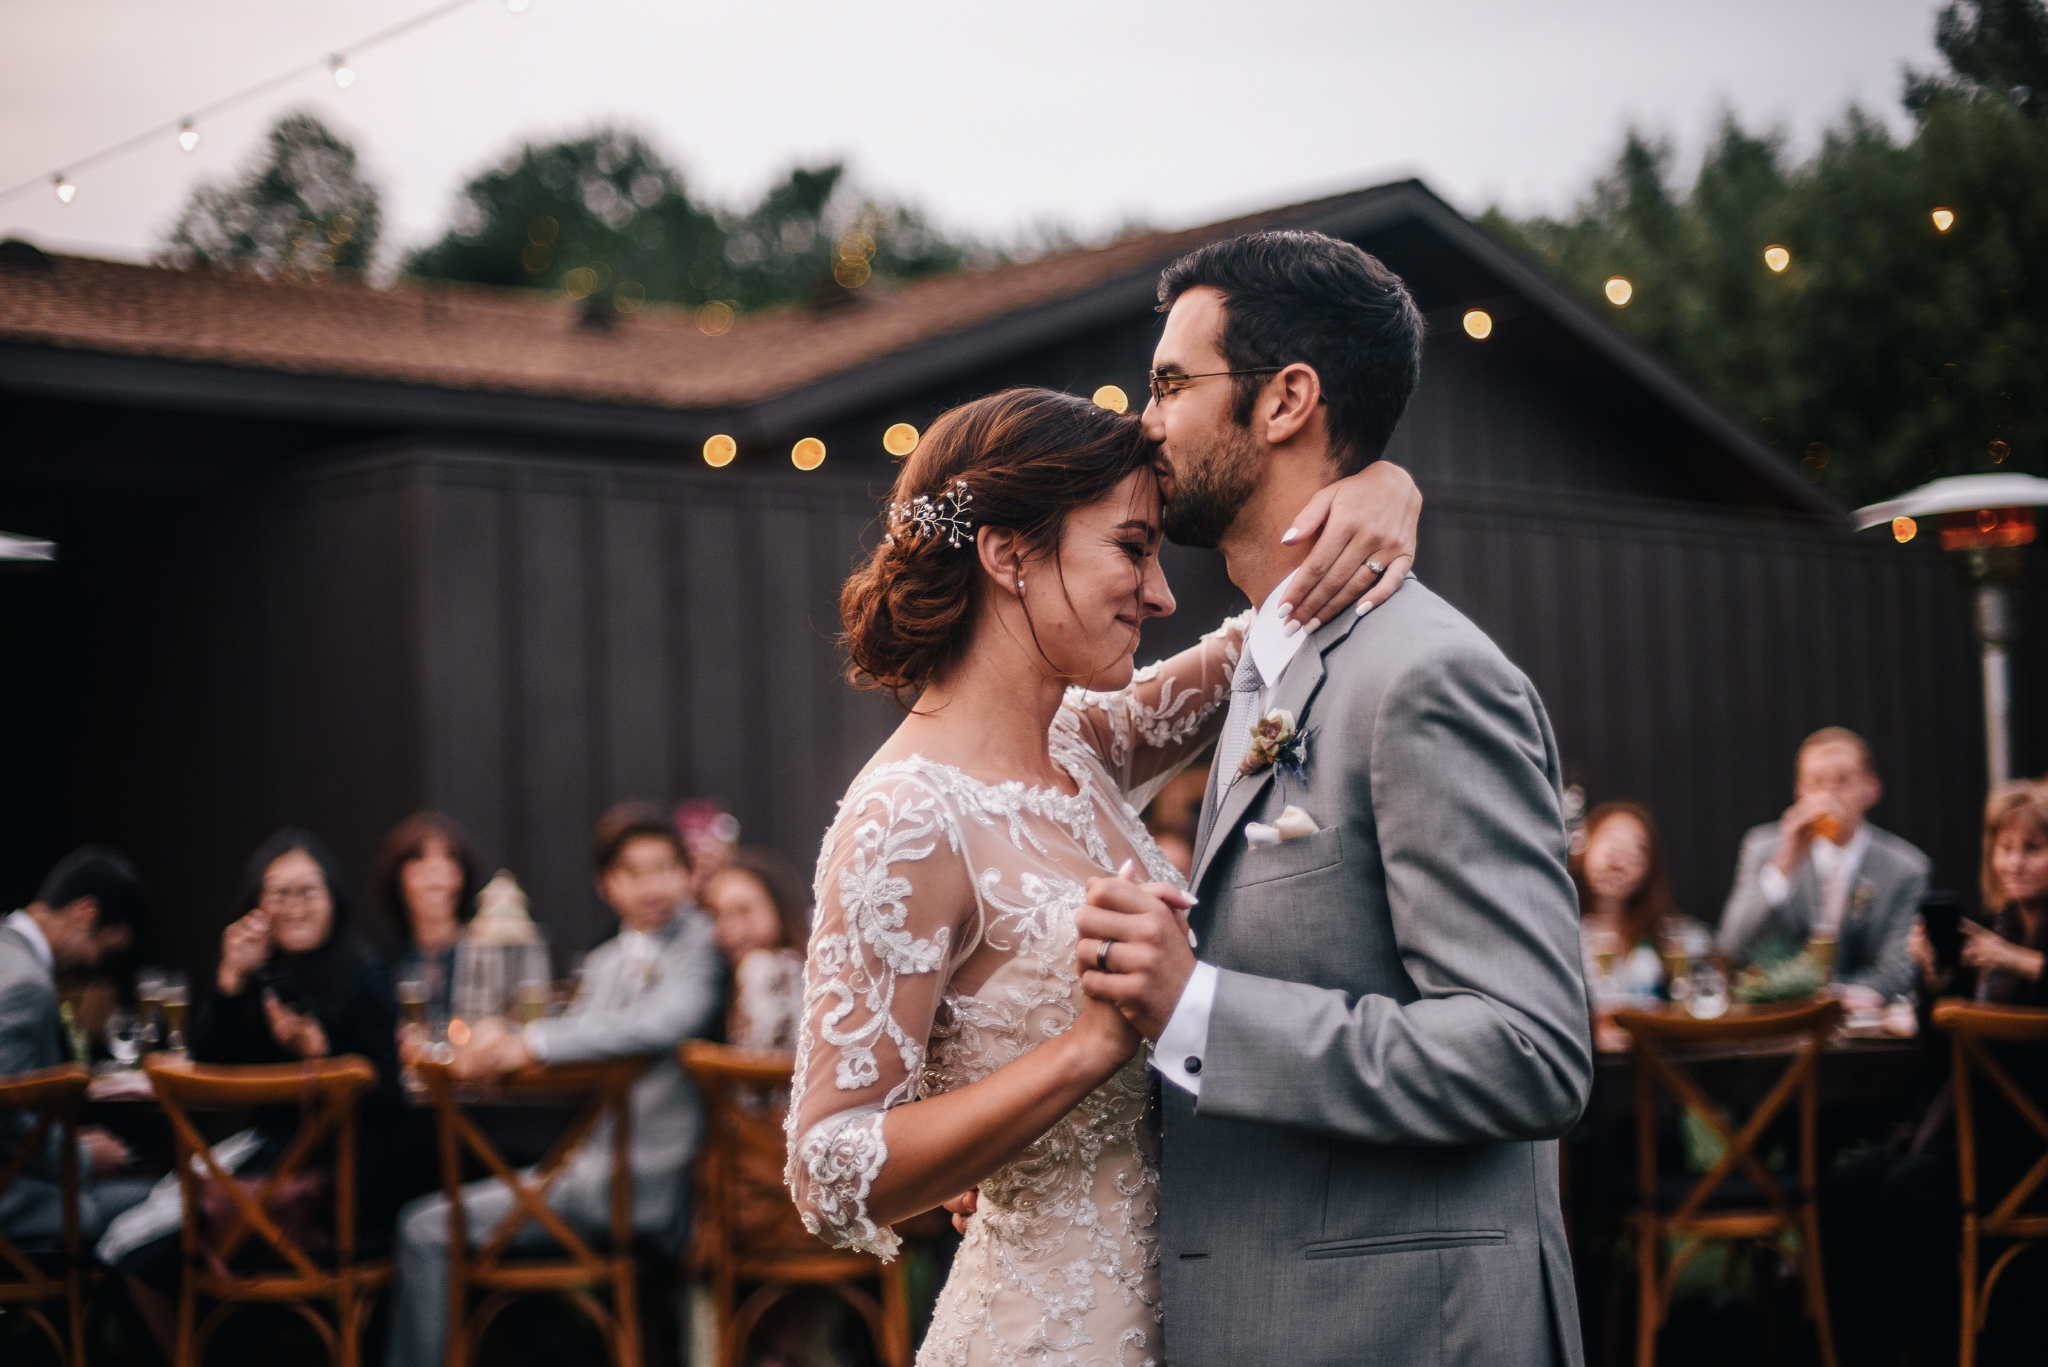 san diego wedding   photographer | bride and groom with groom kissing bride's forehead with   blurred crowd in background